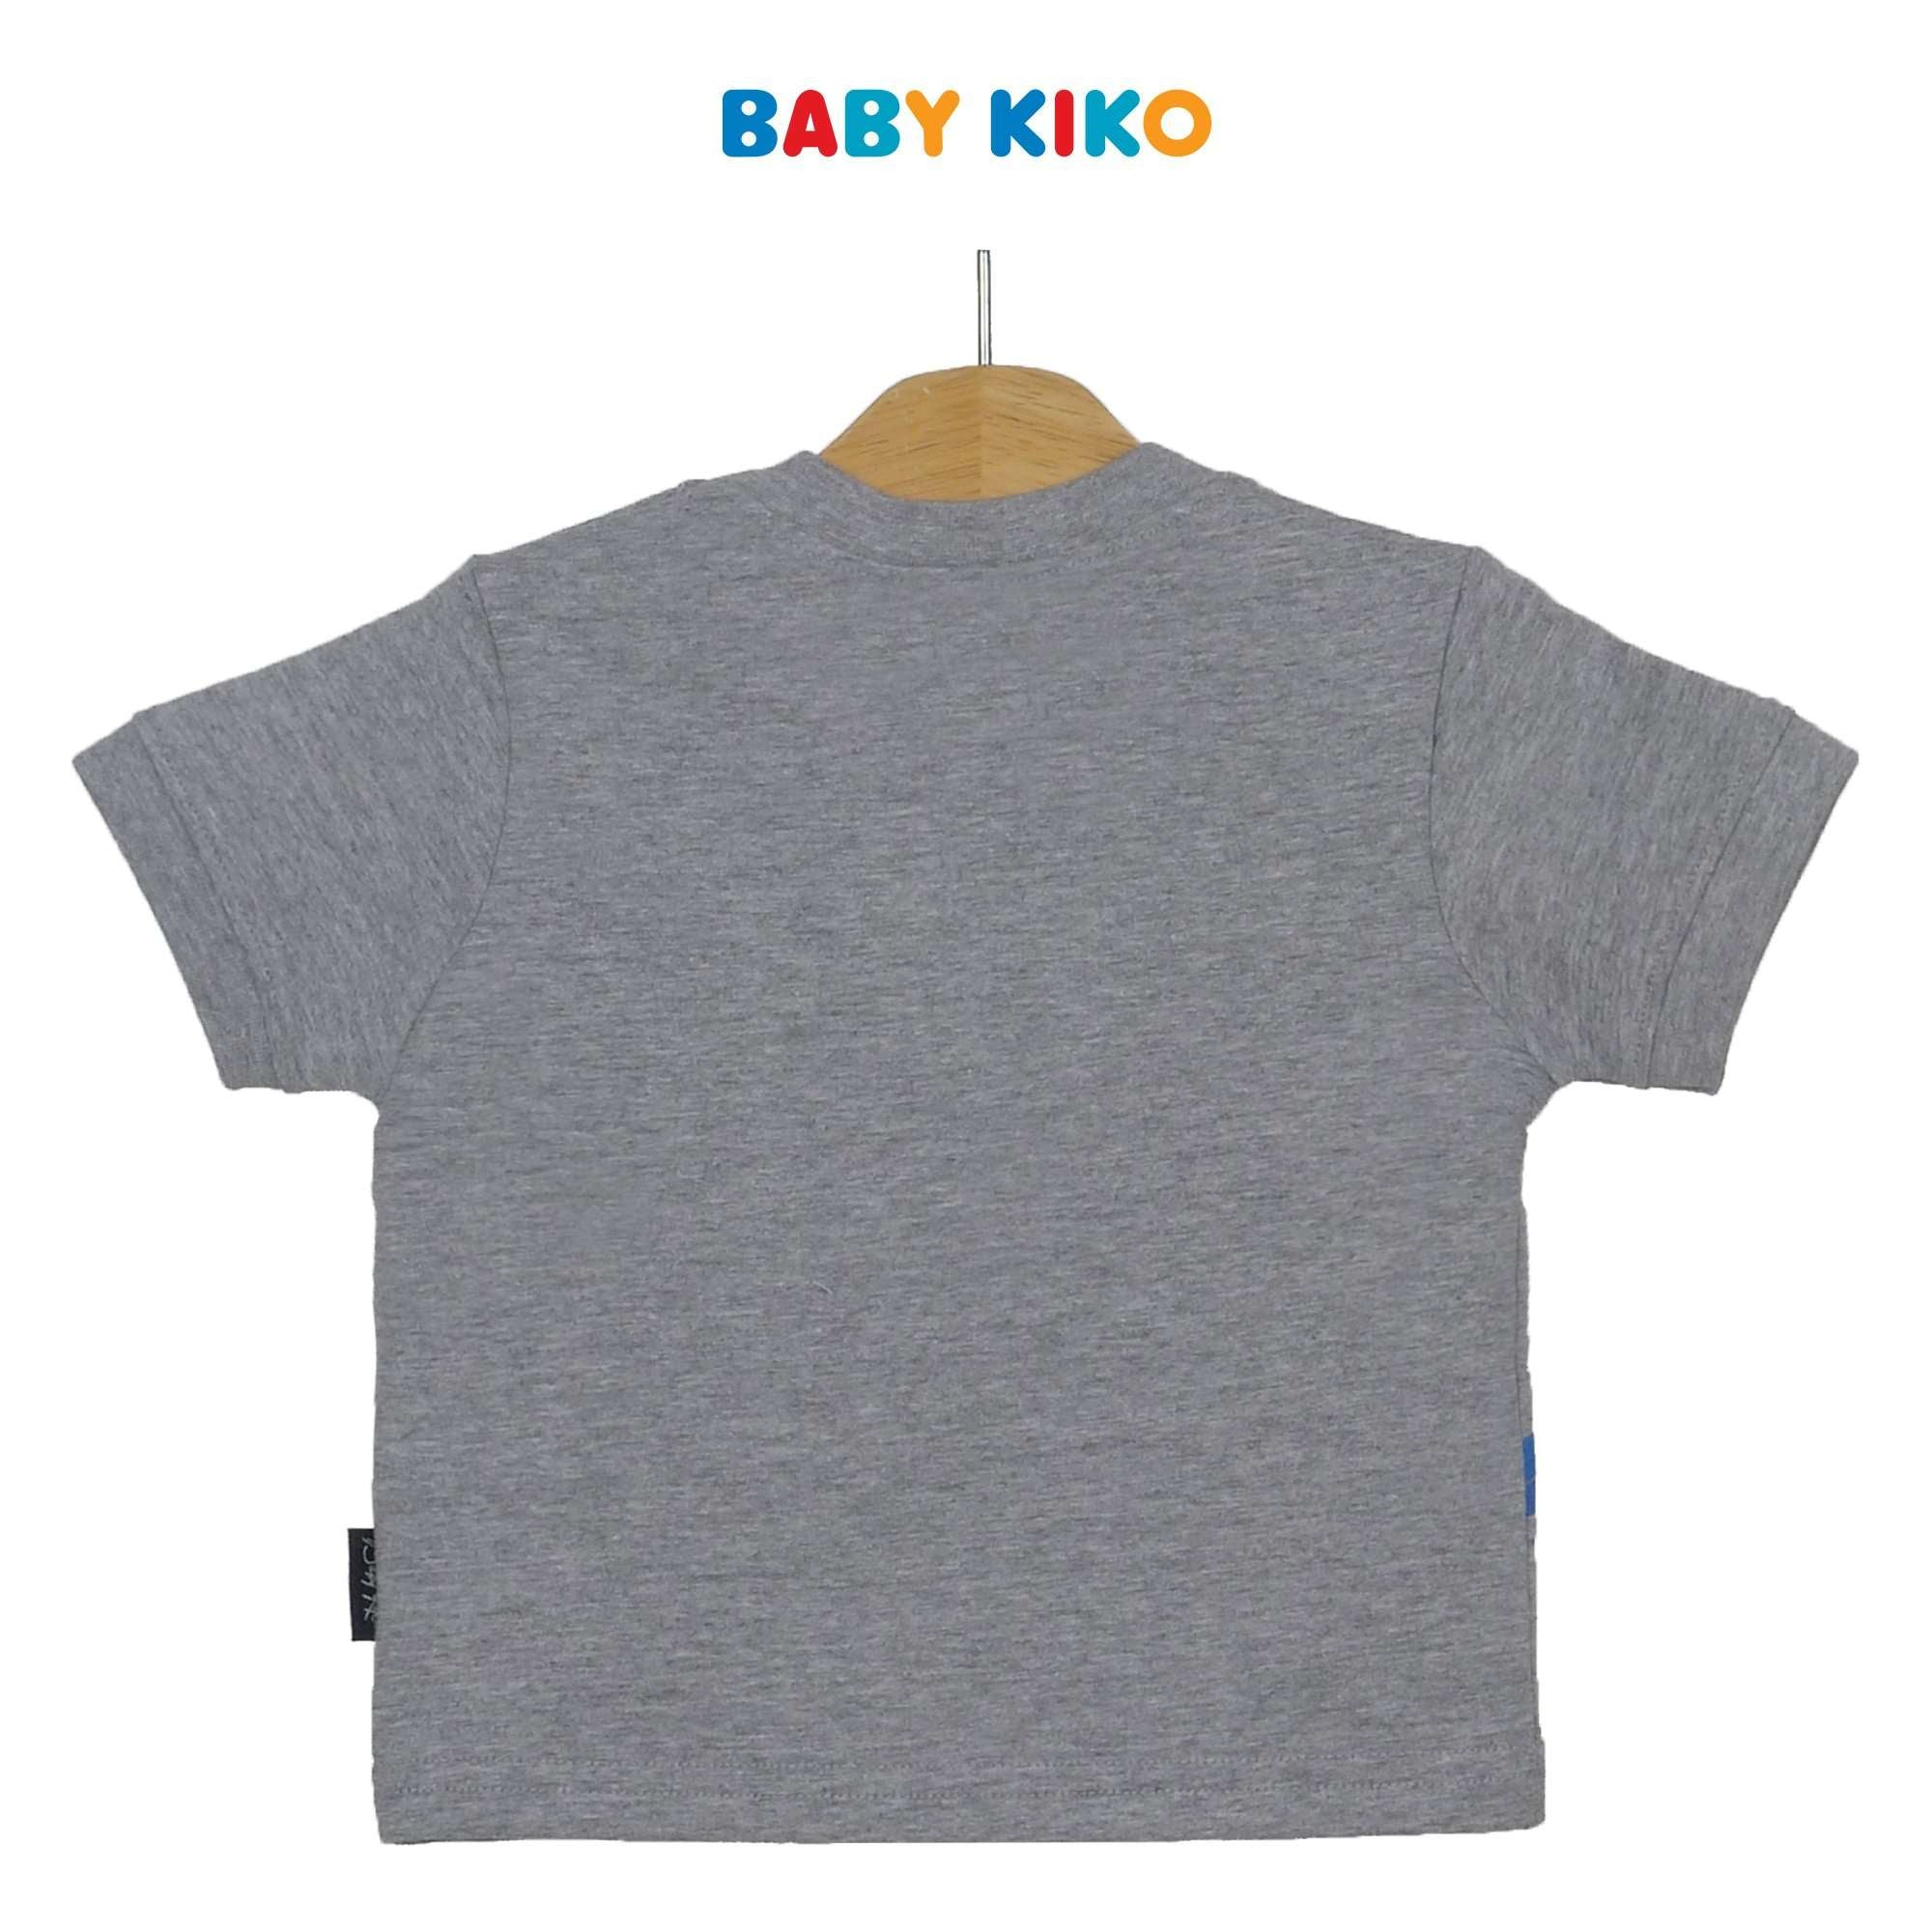 Baby KIKO Baby Boy Short Sleeve Tee 330084-111 : Buy Baby KIKO online at CMG.MY